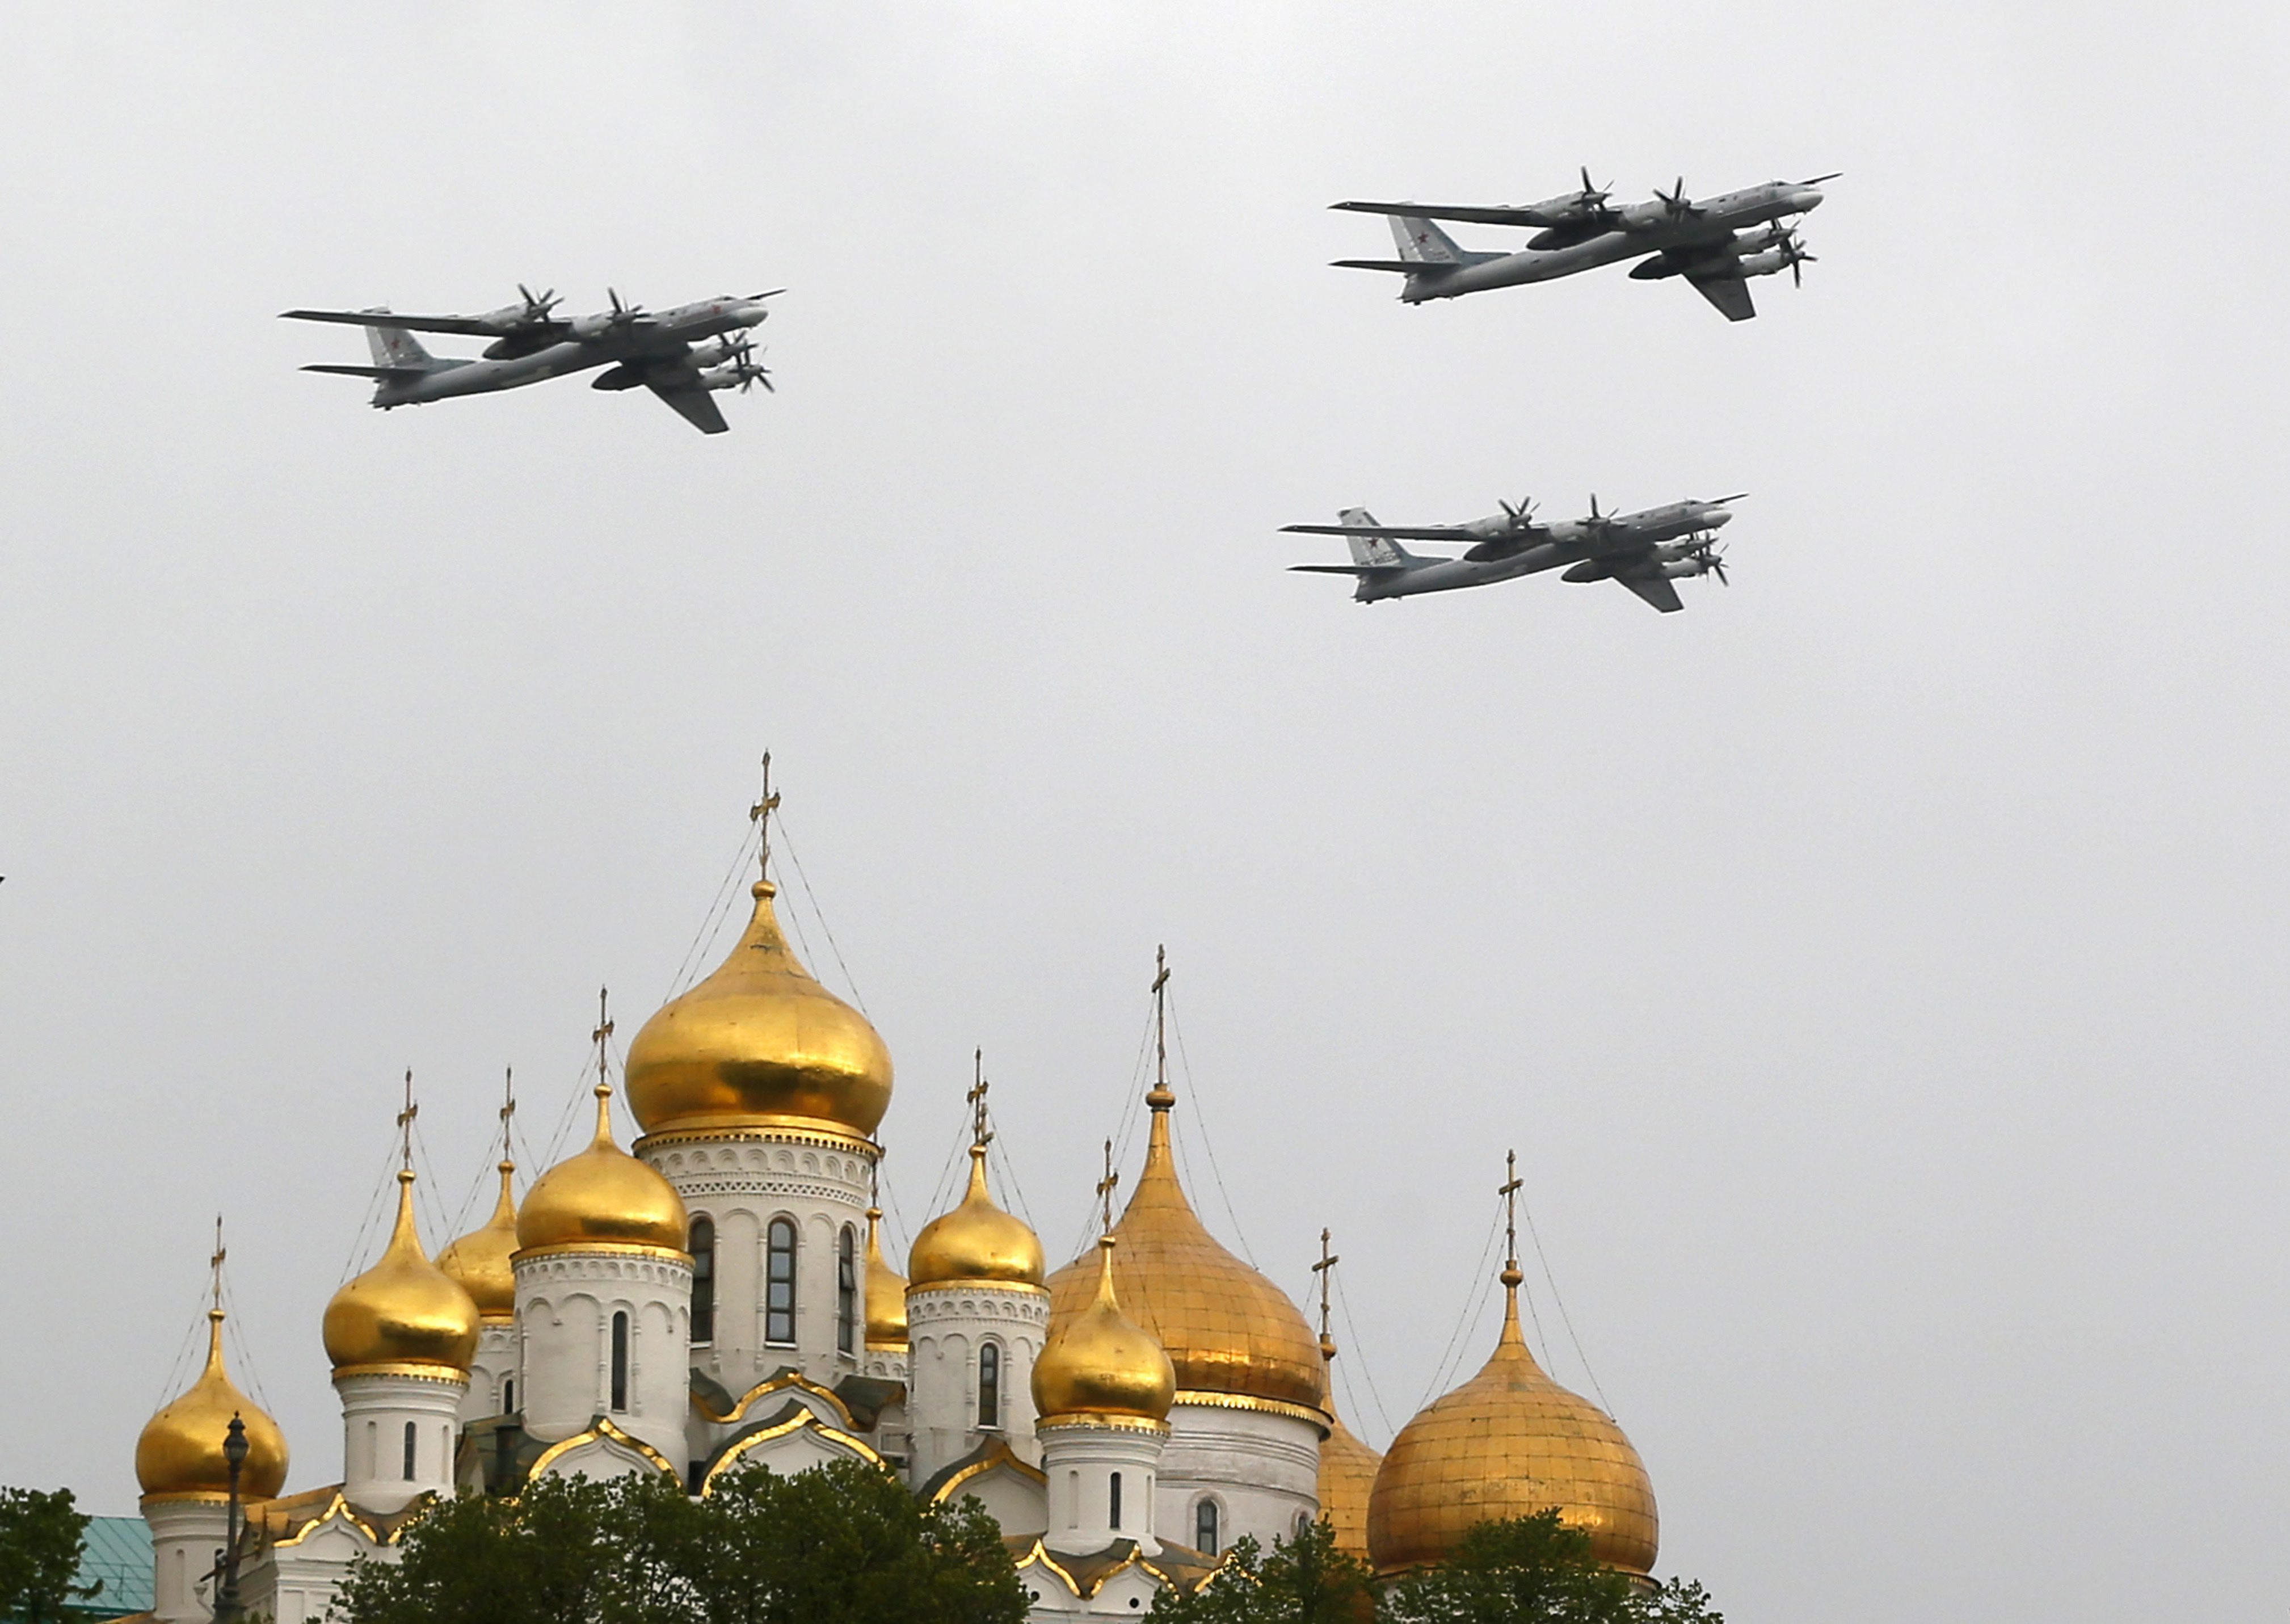 epaselect epa04194663 Russian Air Force strategic bombers, Tu-95, fly over Red Square in Moscow, Russia, 07 May 2014, during a general rehearsal for the military parade which will take place on Red Square on 09 May, to commemorate the victory of the Soviet Union's Red Army over Nazi-Germany in WWII. EPA/YURI KOCHETKOV ORG XMIT: MOS04